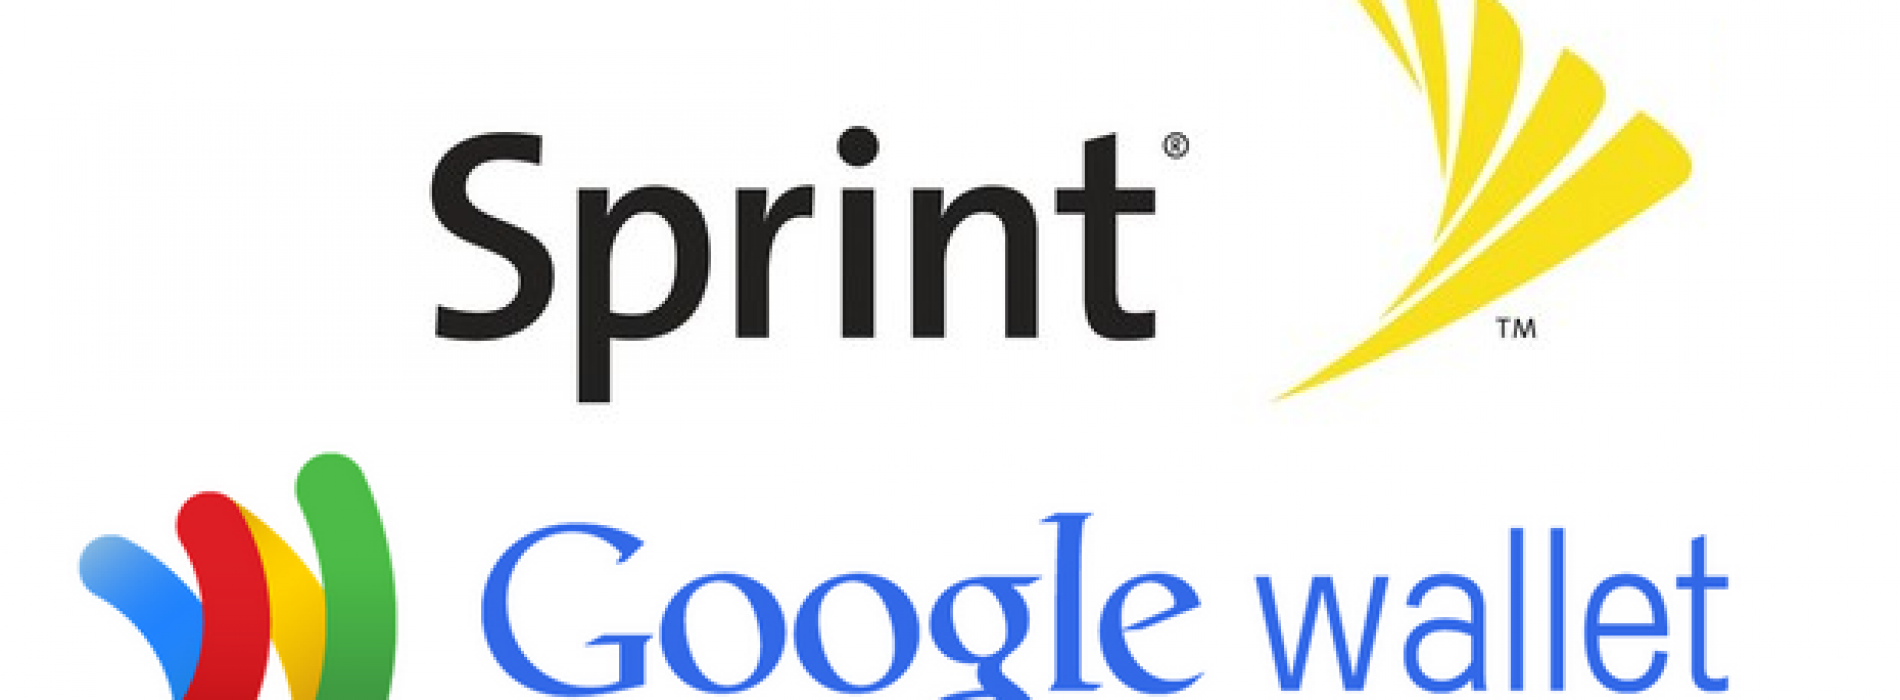 Sprint Galaxy S4, Note 2, HTC One get Google Wallet support